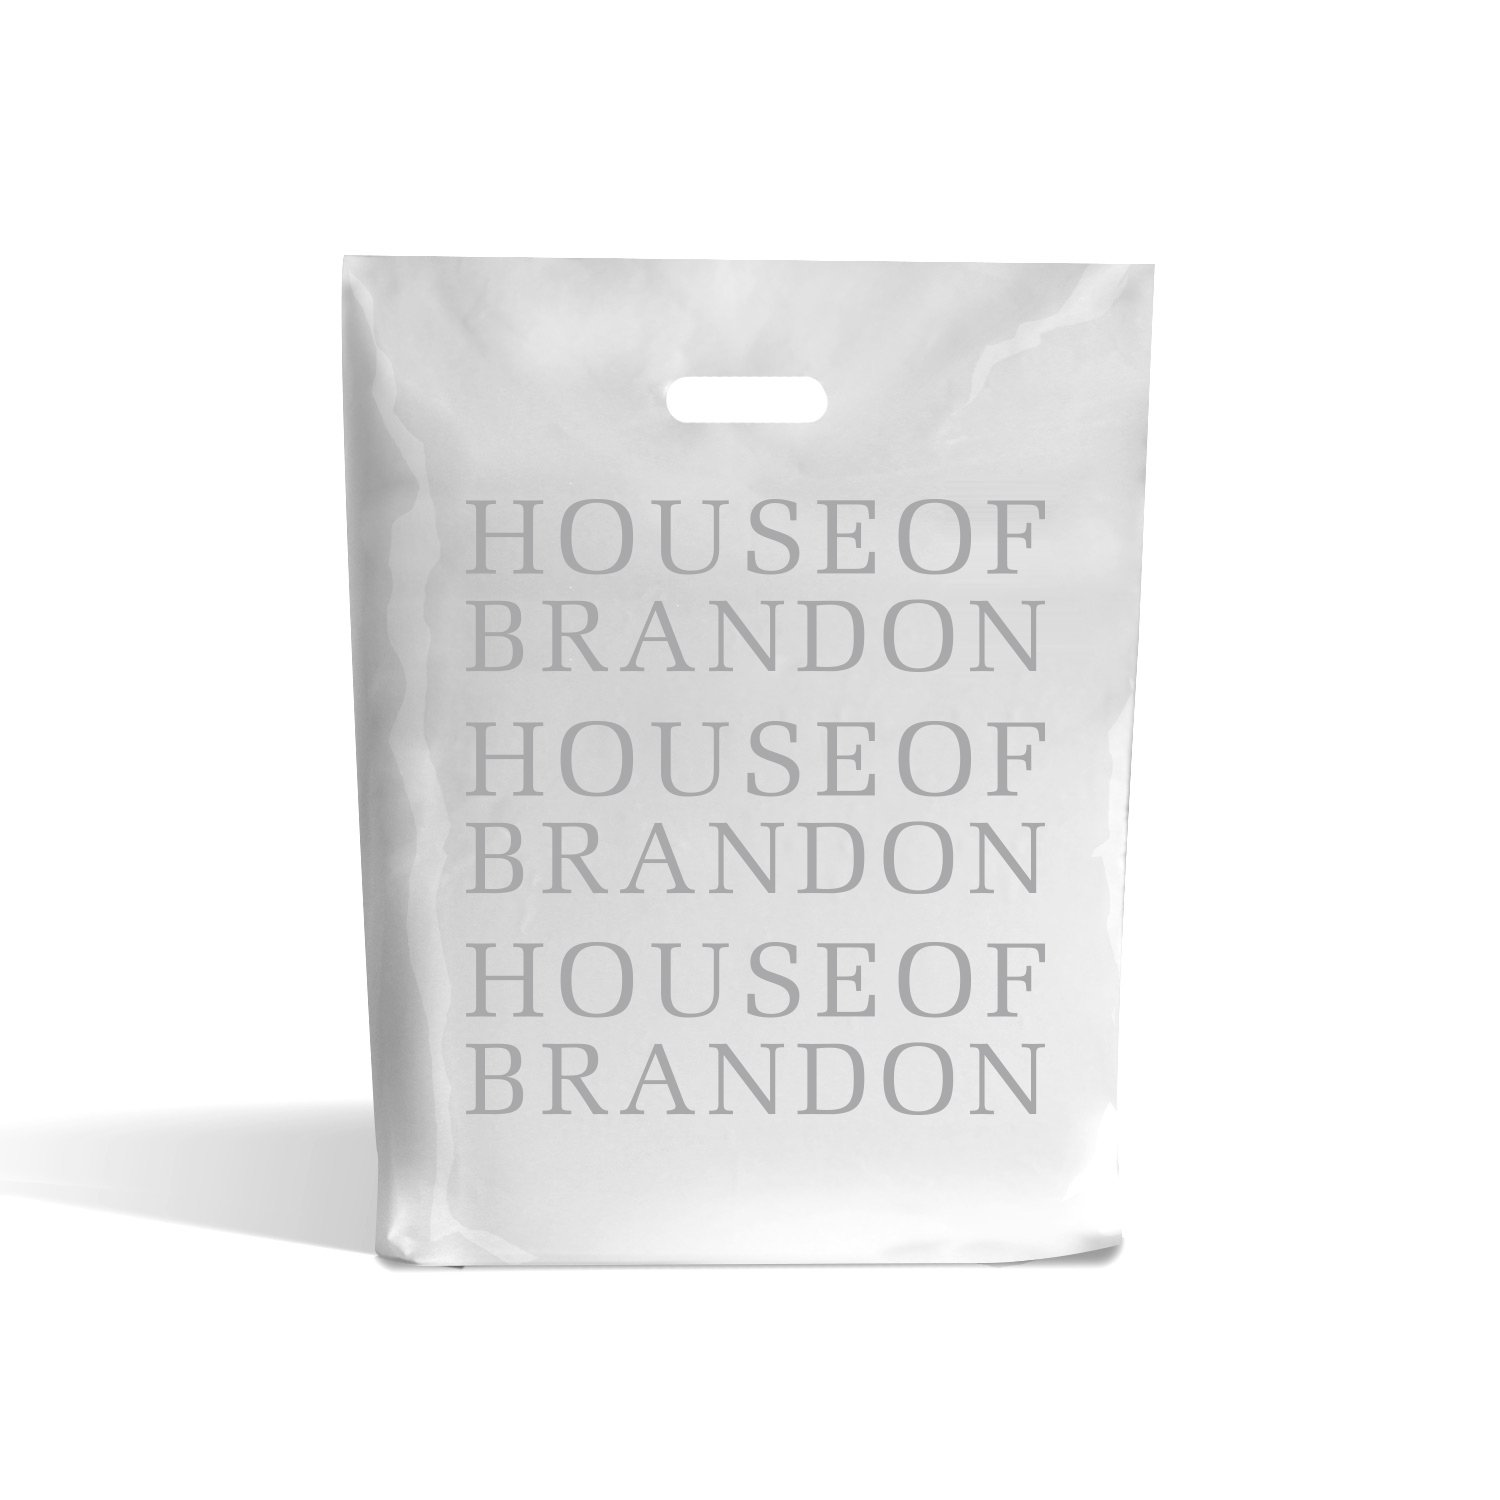 House of Brandon referenssi